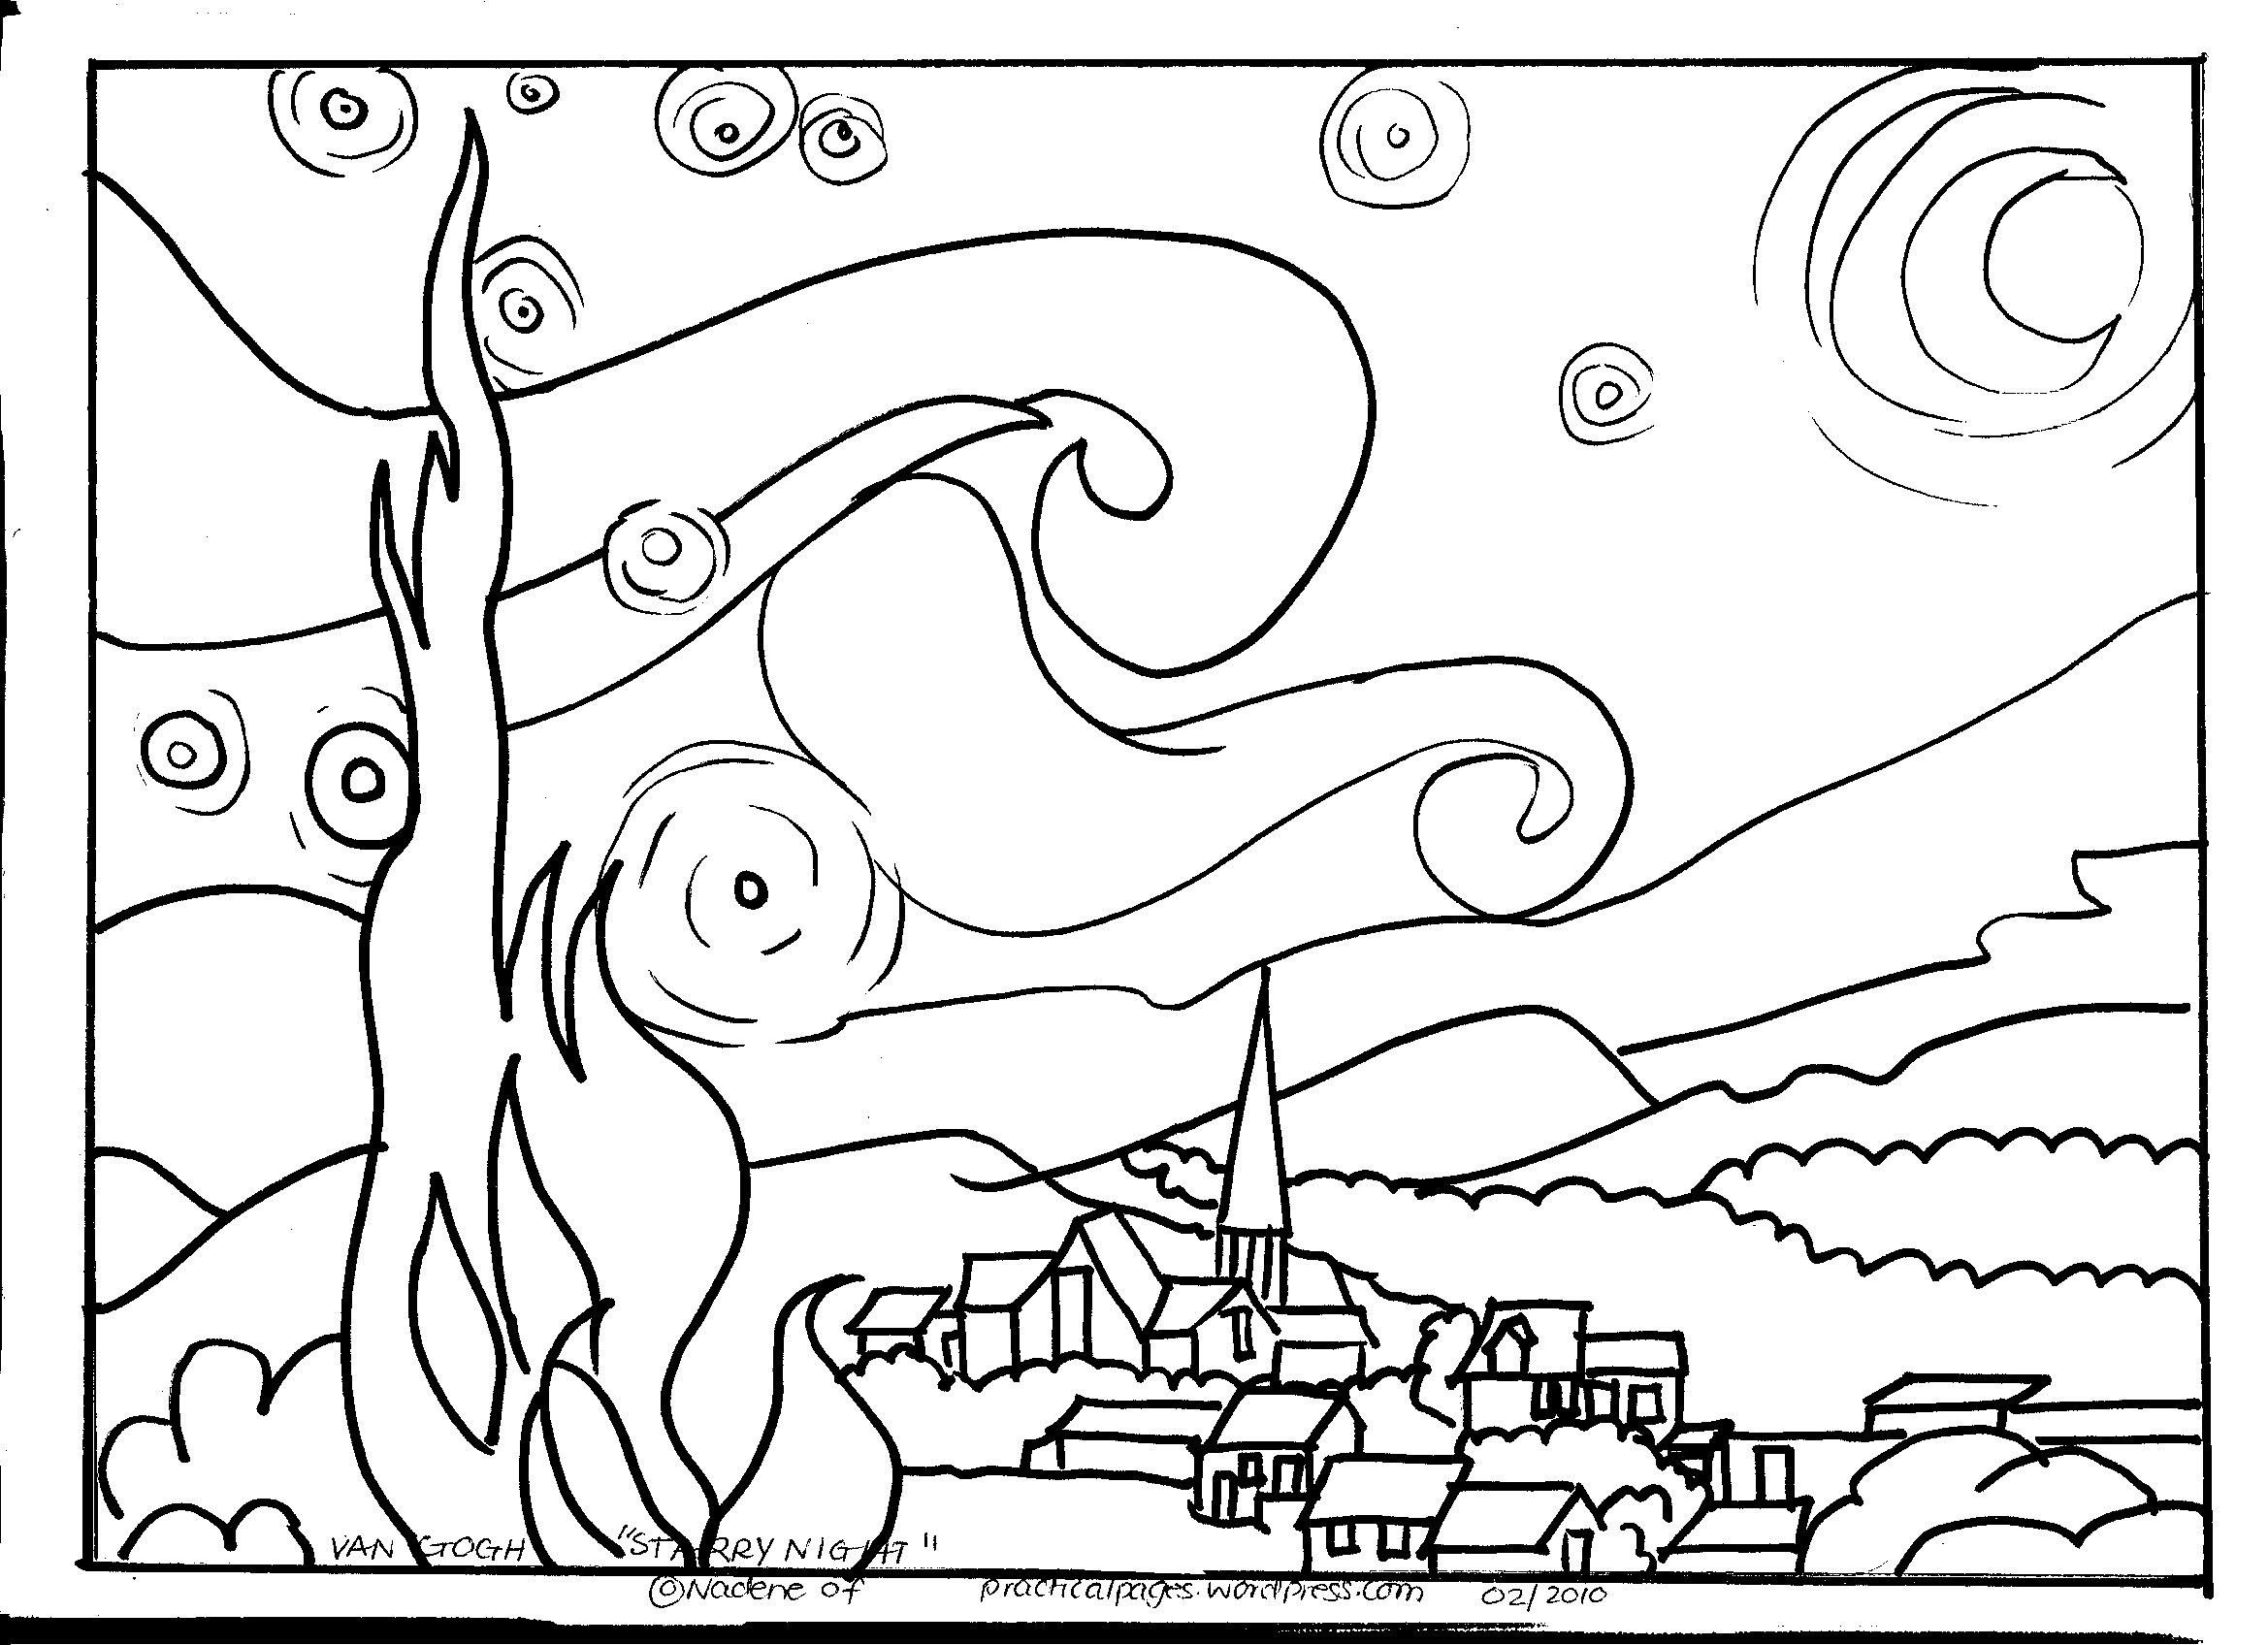 Coloring pages van gogh